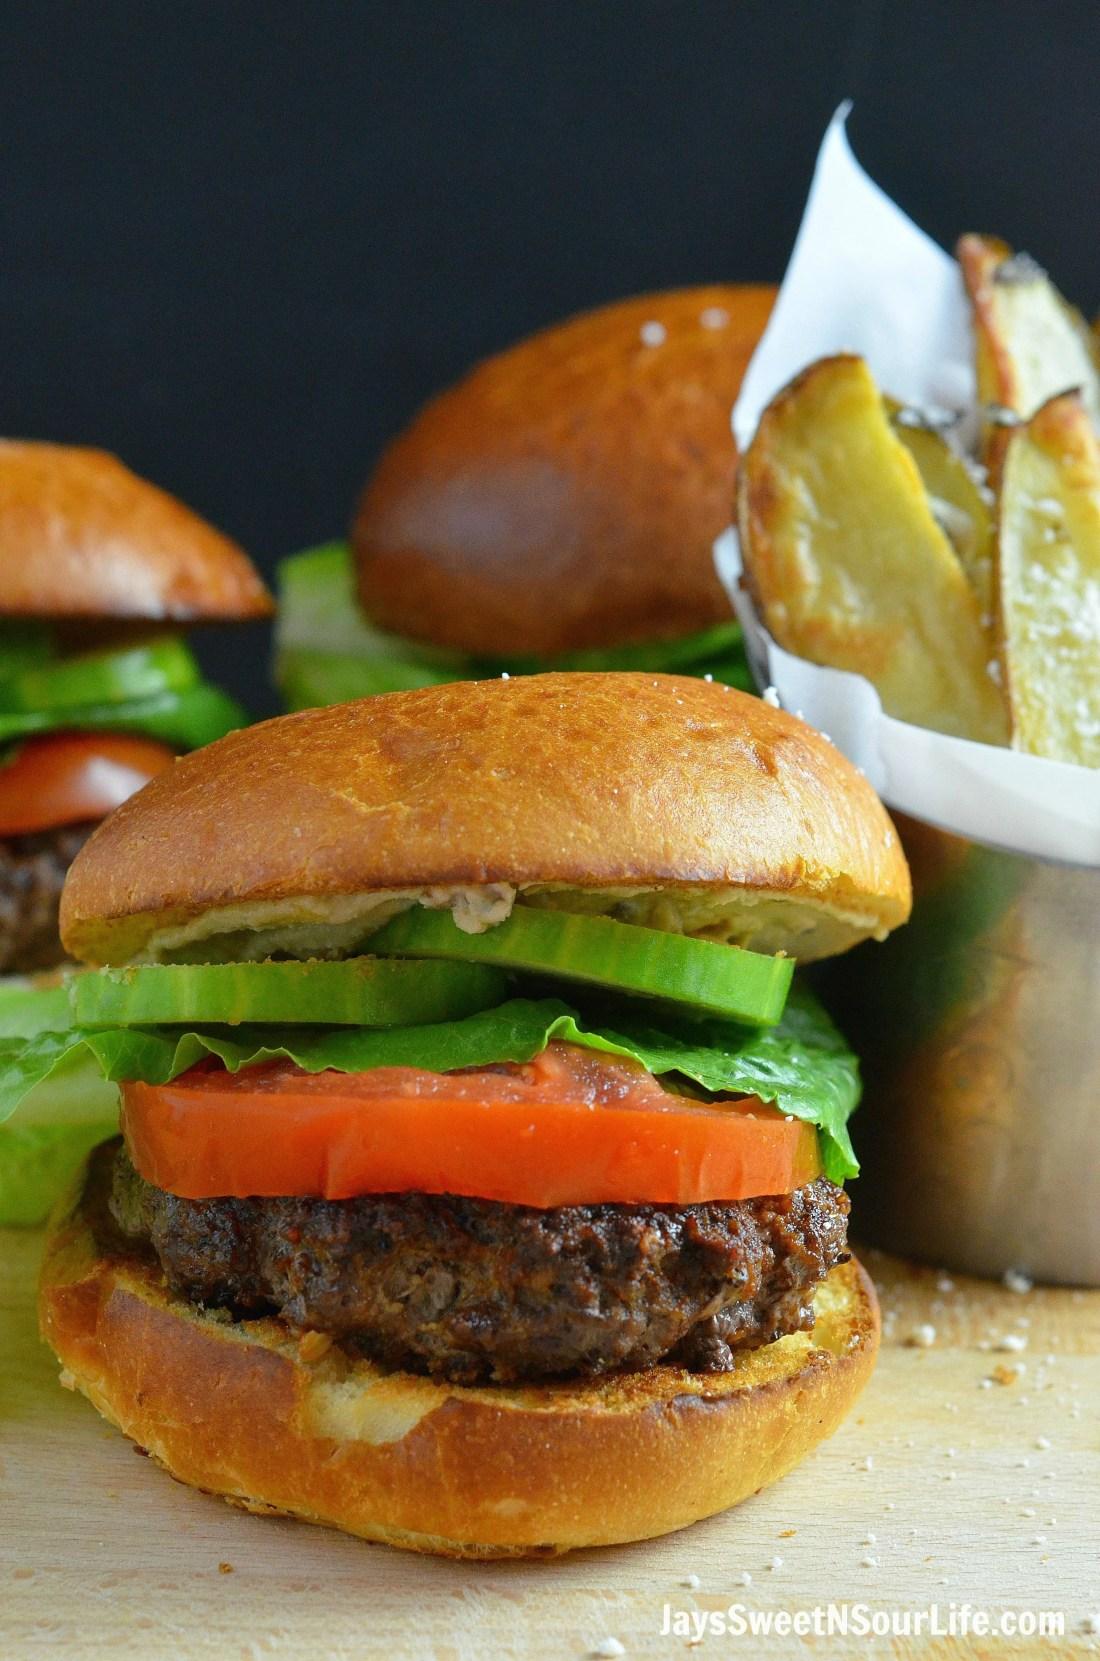 Mediterranean Bison Burger and Fries Closeup. Deck the halls and your home with the smell of delicious fresh made Mediterranean Bison Burger and fries using Boar's Hummus as a spread.